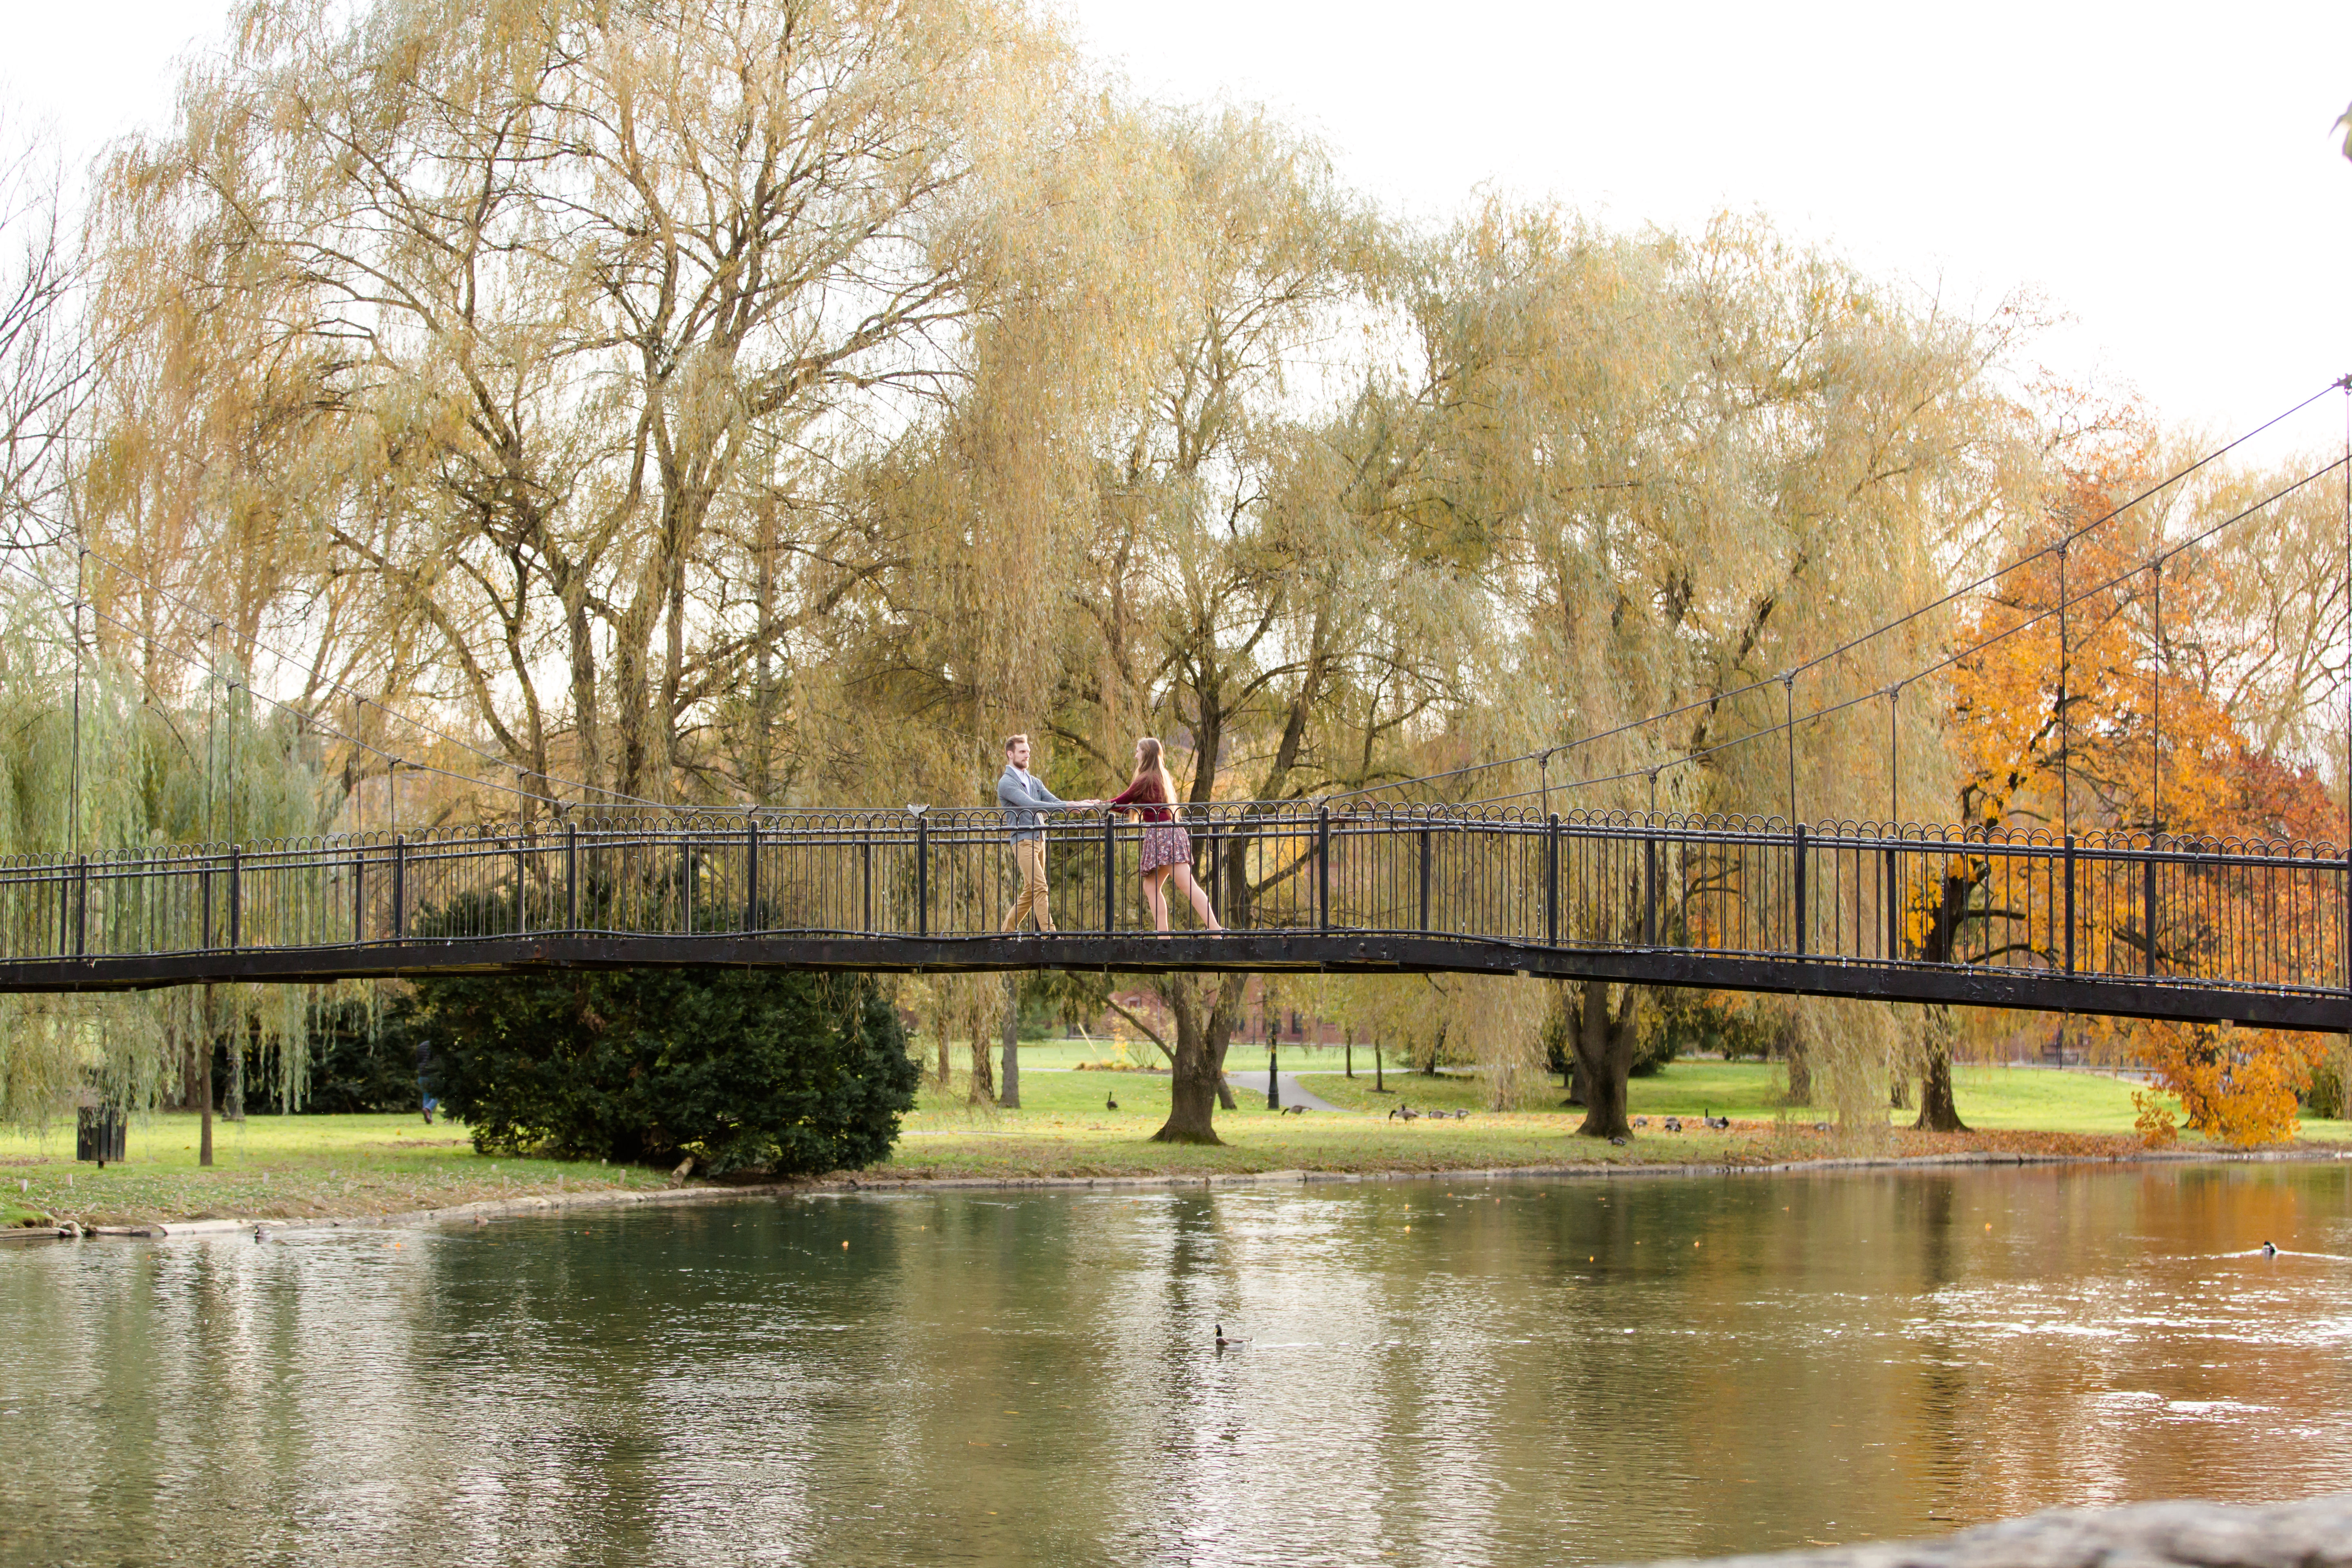 Fall engagement photos at Talleyrand Park in Victorian Bellefonte central Pennsylvania featuring the bridge